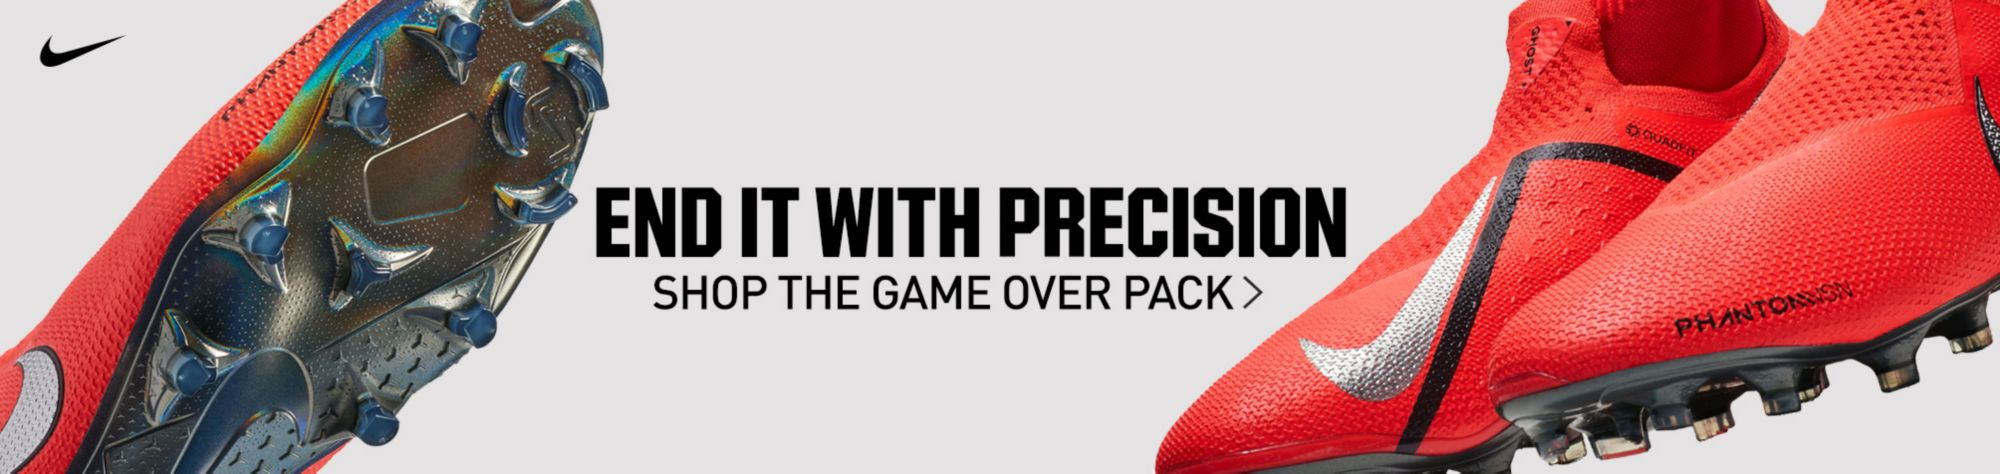 END IT WITH PRECISION SHOP THE GAME OVER PACK